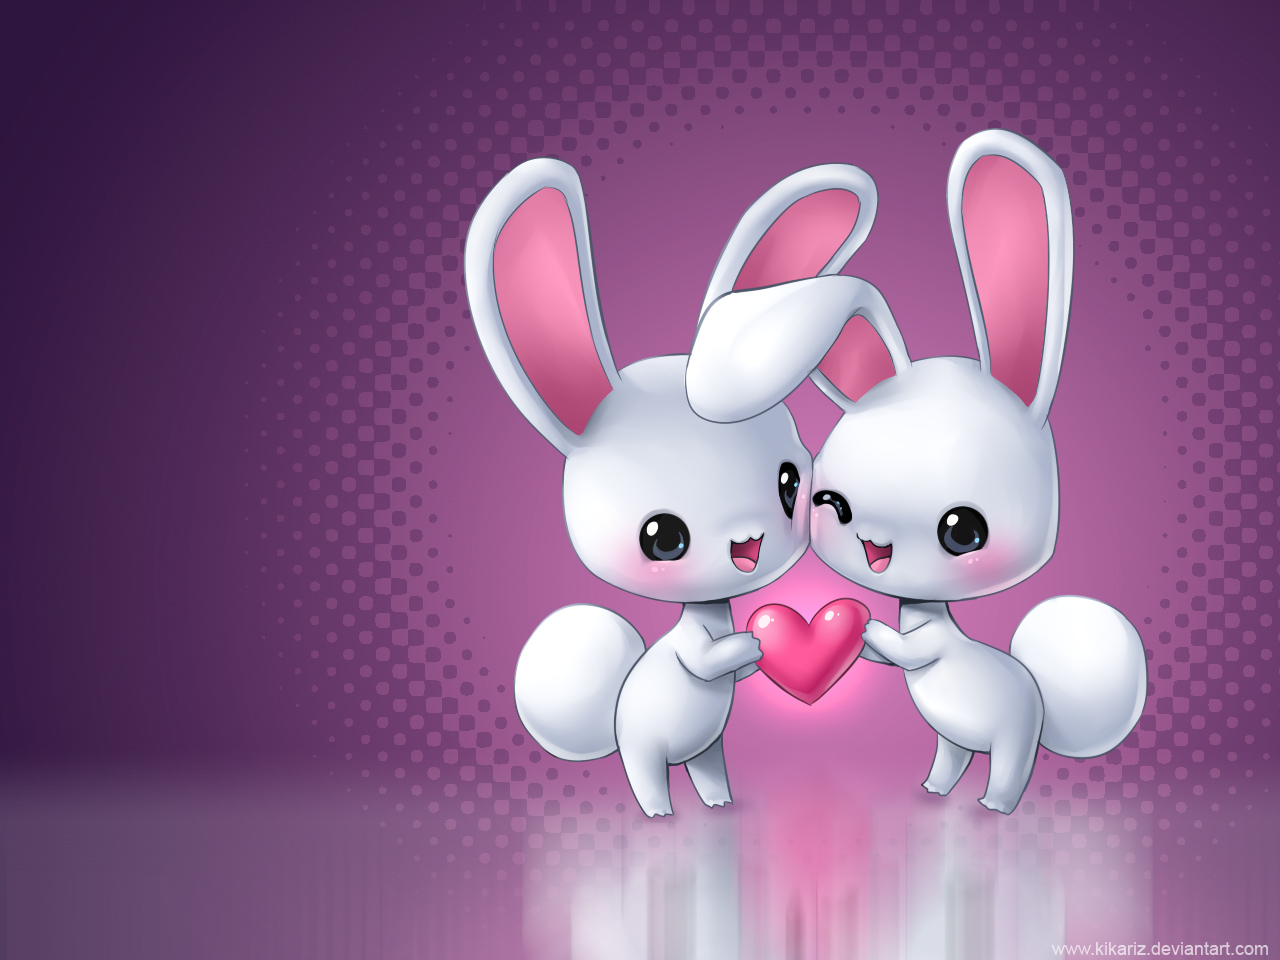 Cute Animated Love Heart Wallpapers For Mobile